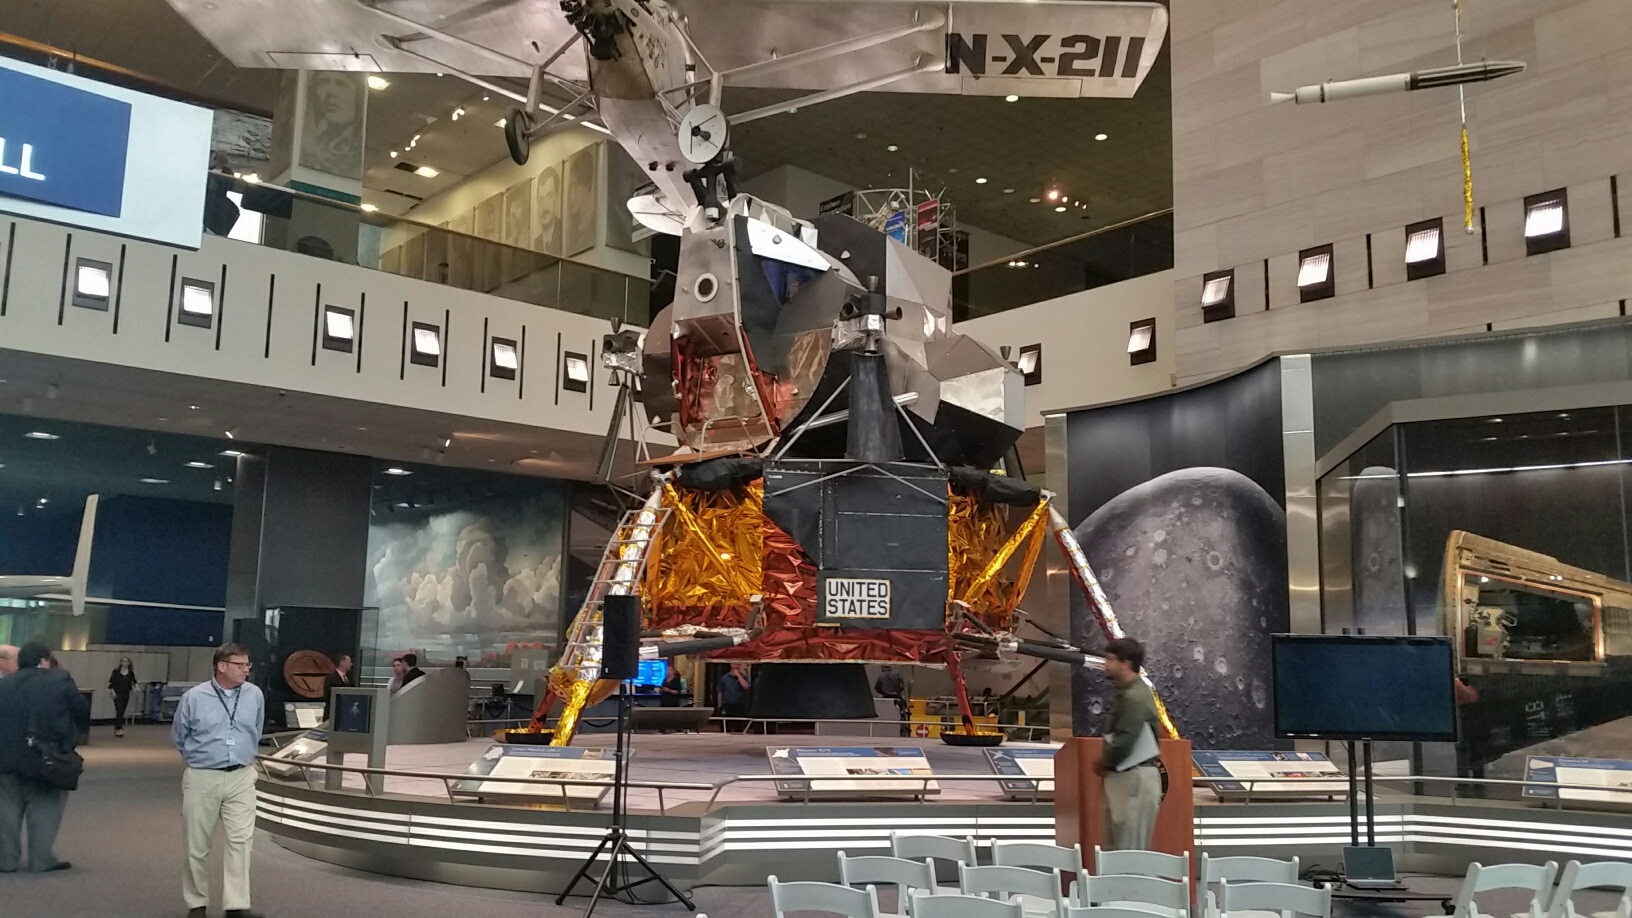 Another treat in the Flight Hall, the second lunar module that was made but did not fly in space. Curator Bob van der Linden says it was used for test purposes. (WTOP/Kathy Stewart)